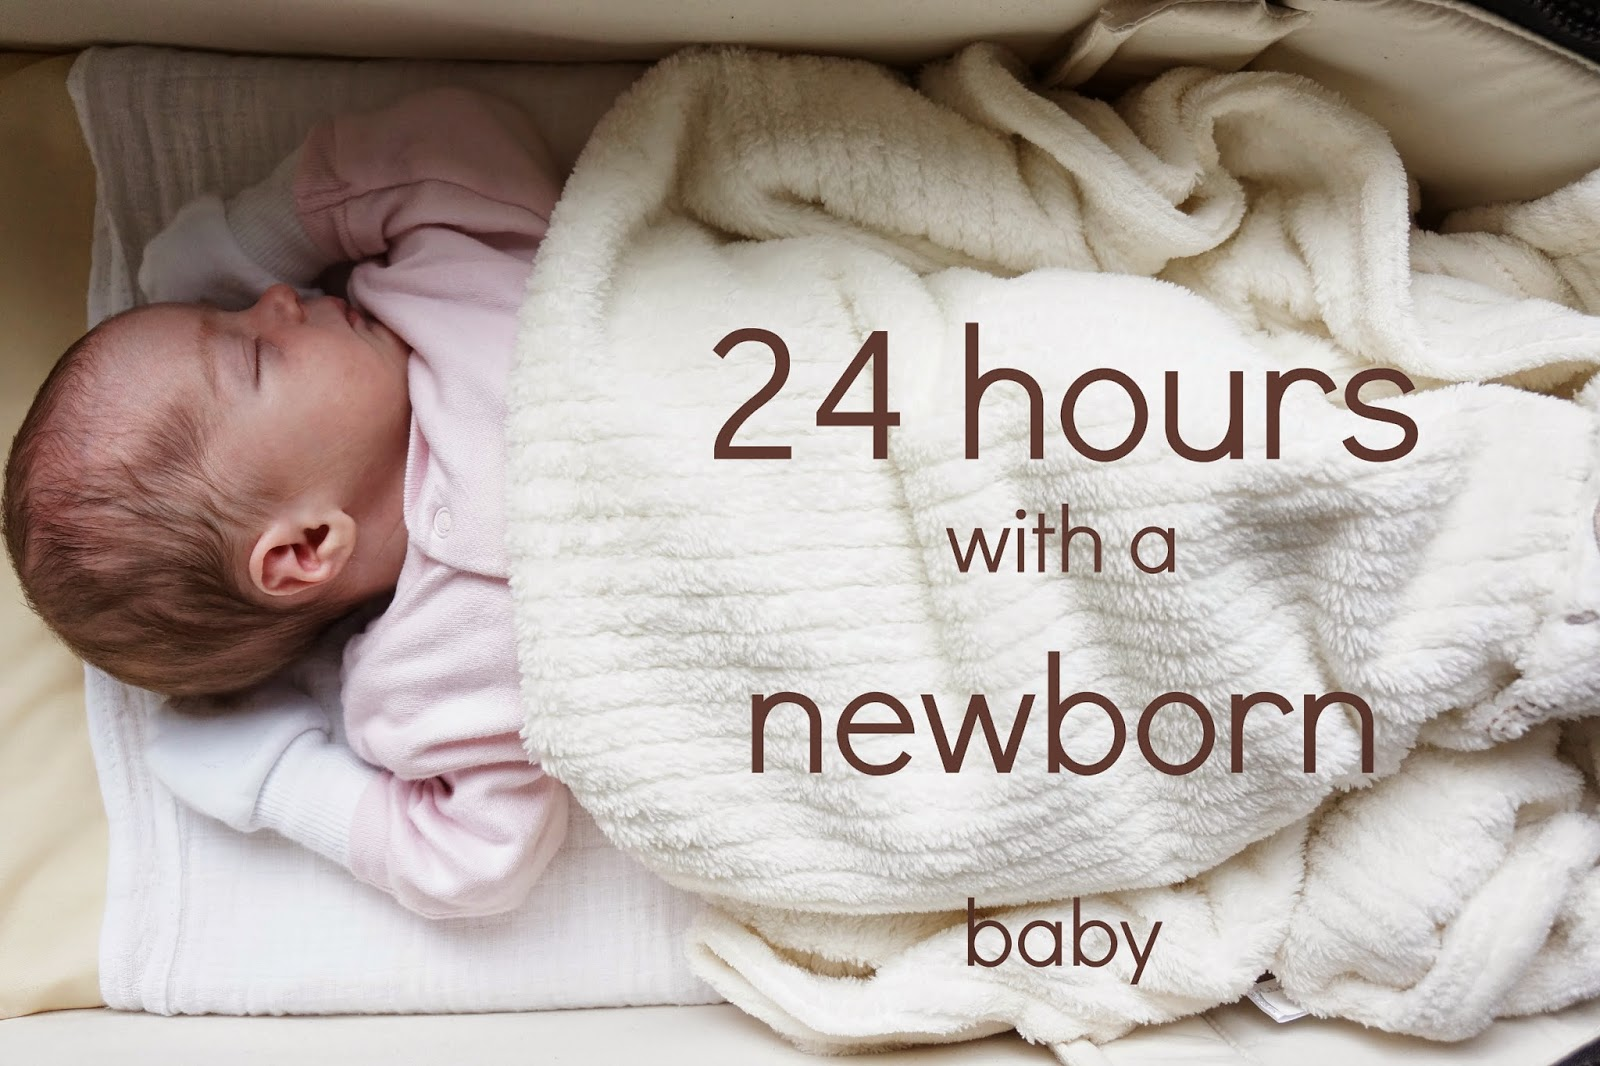 http://www.wavetomummy.com/2014/09/24-hours-with-newborn-baby.html